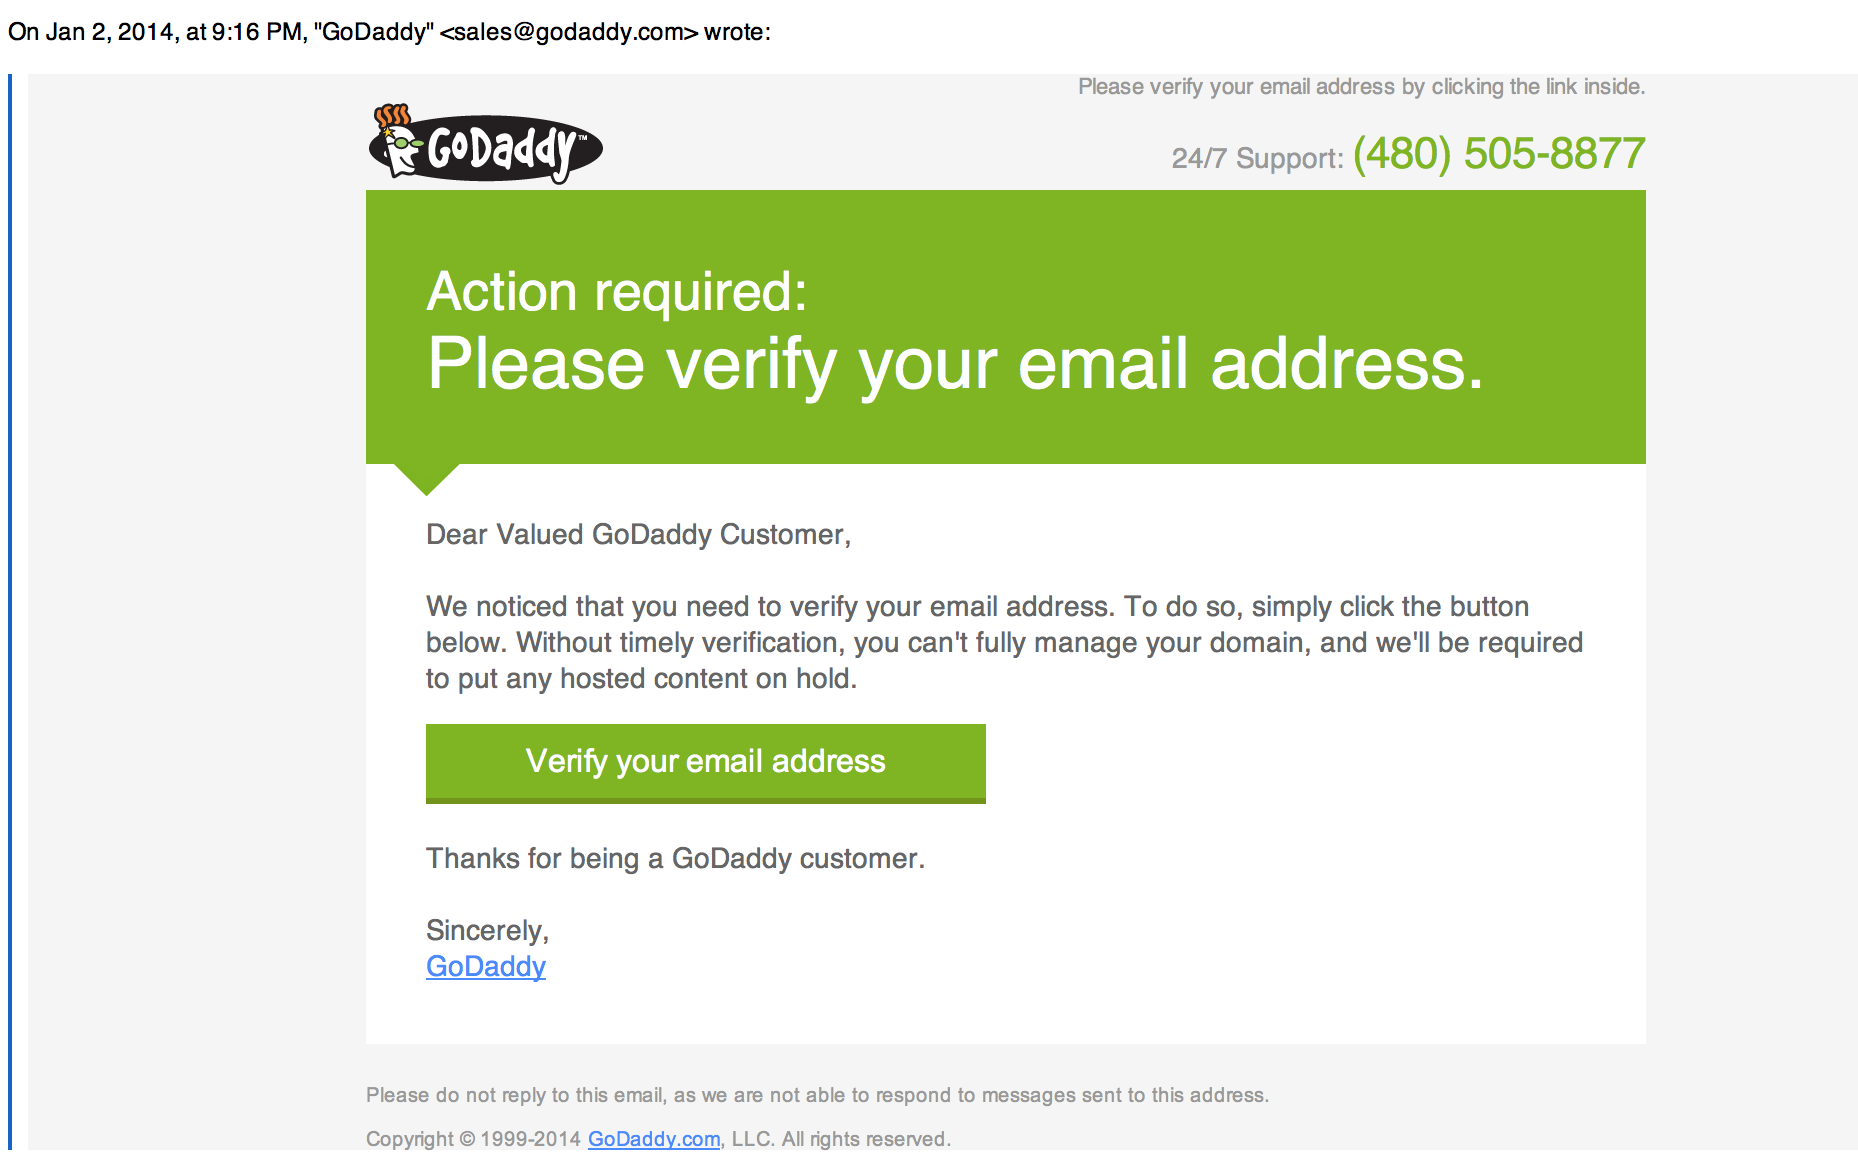 godaddy customer support phone number